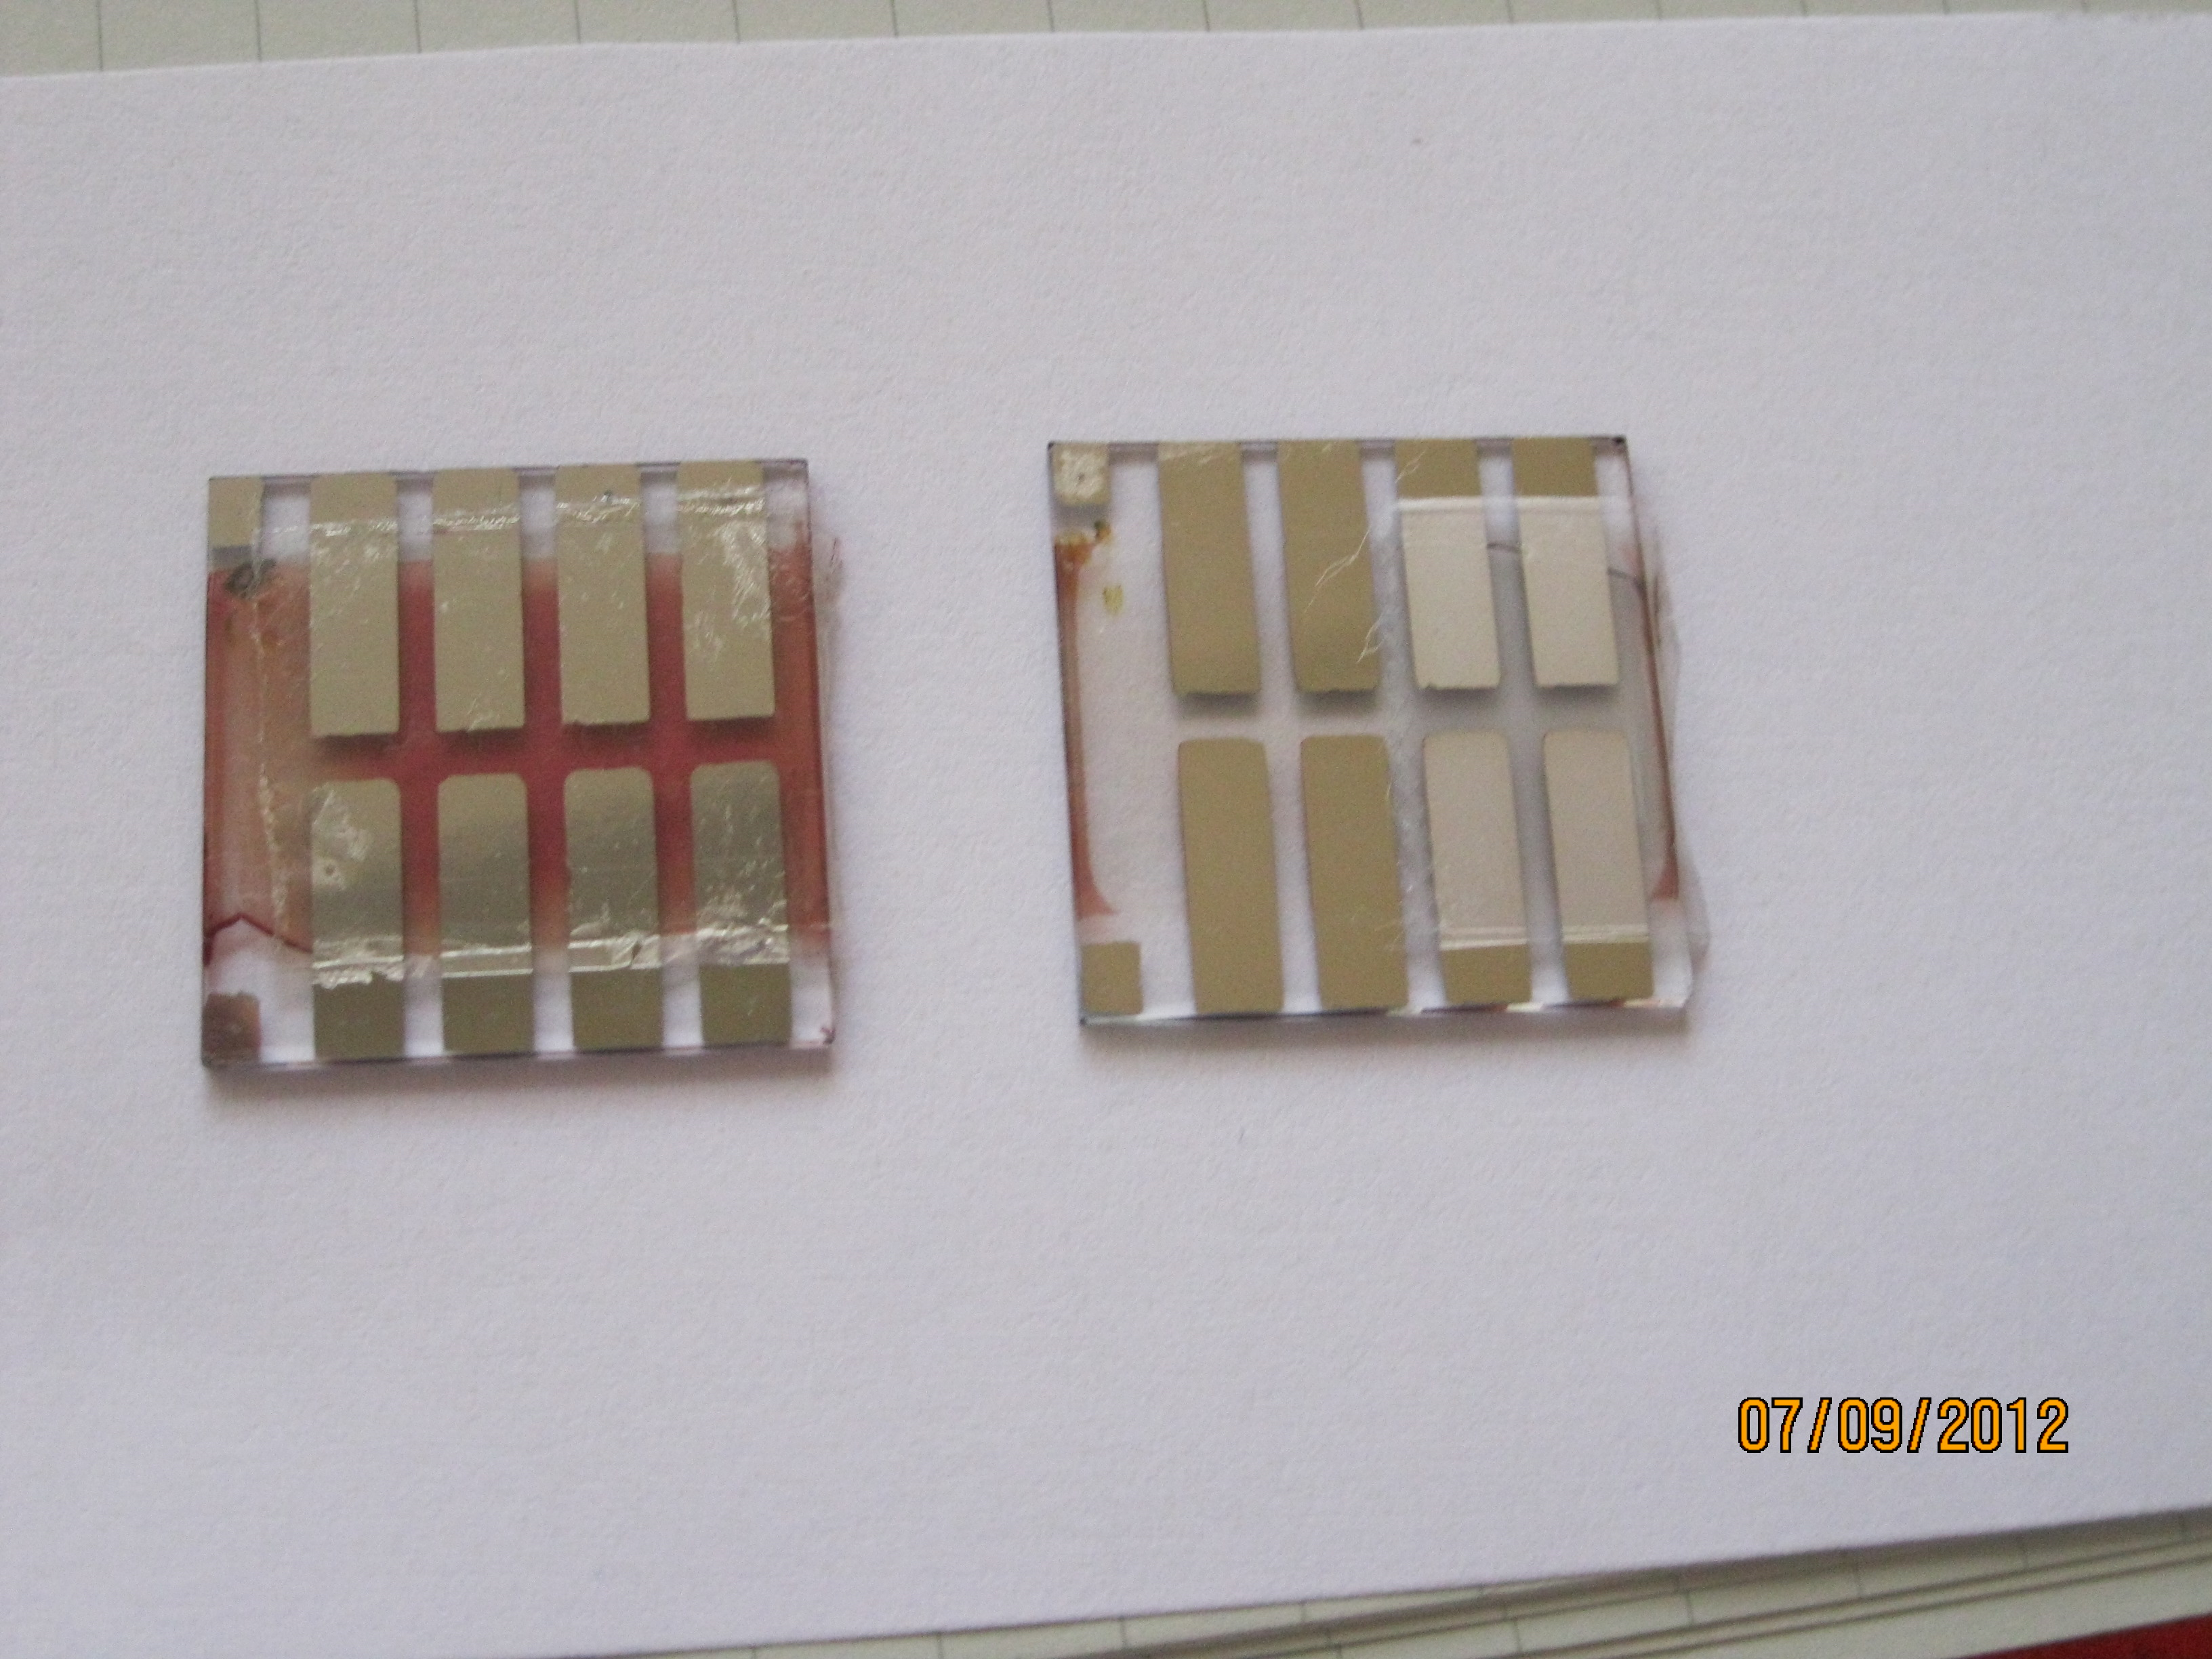 Organic solar cell showing photo bleaching without protection